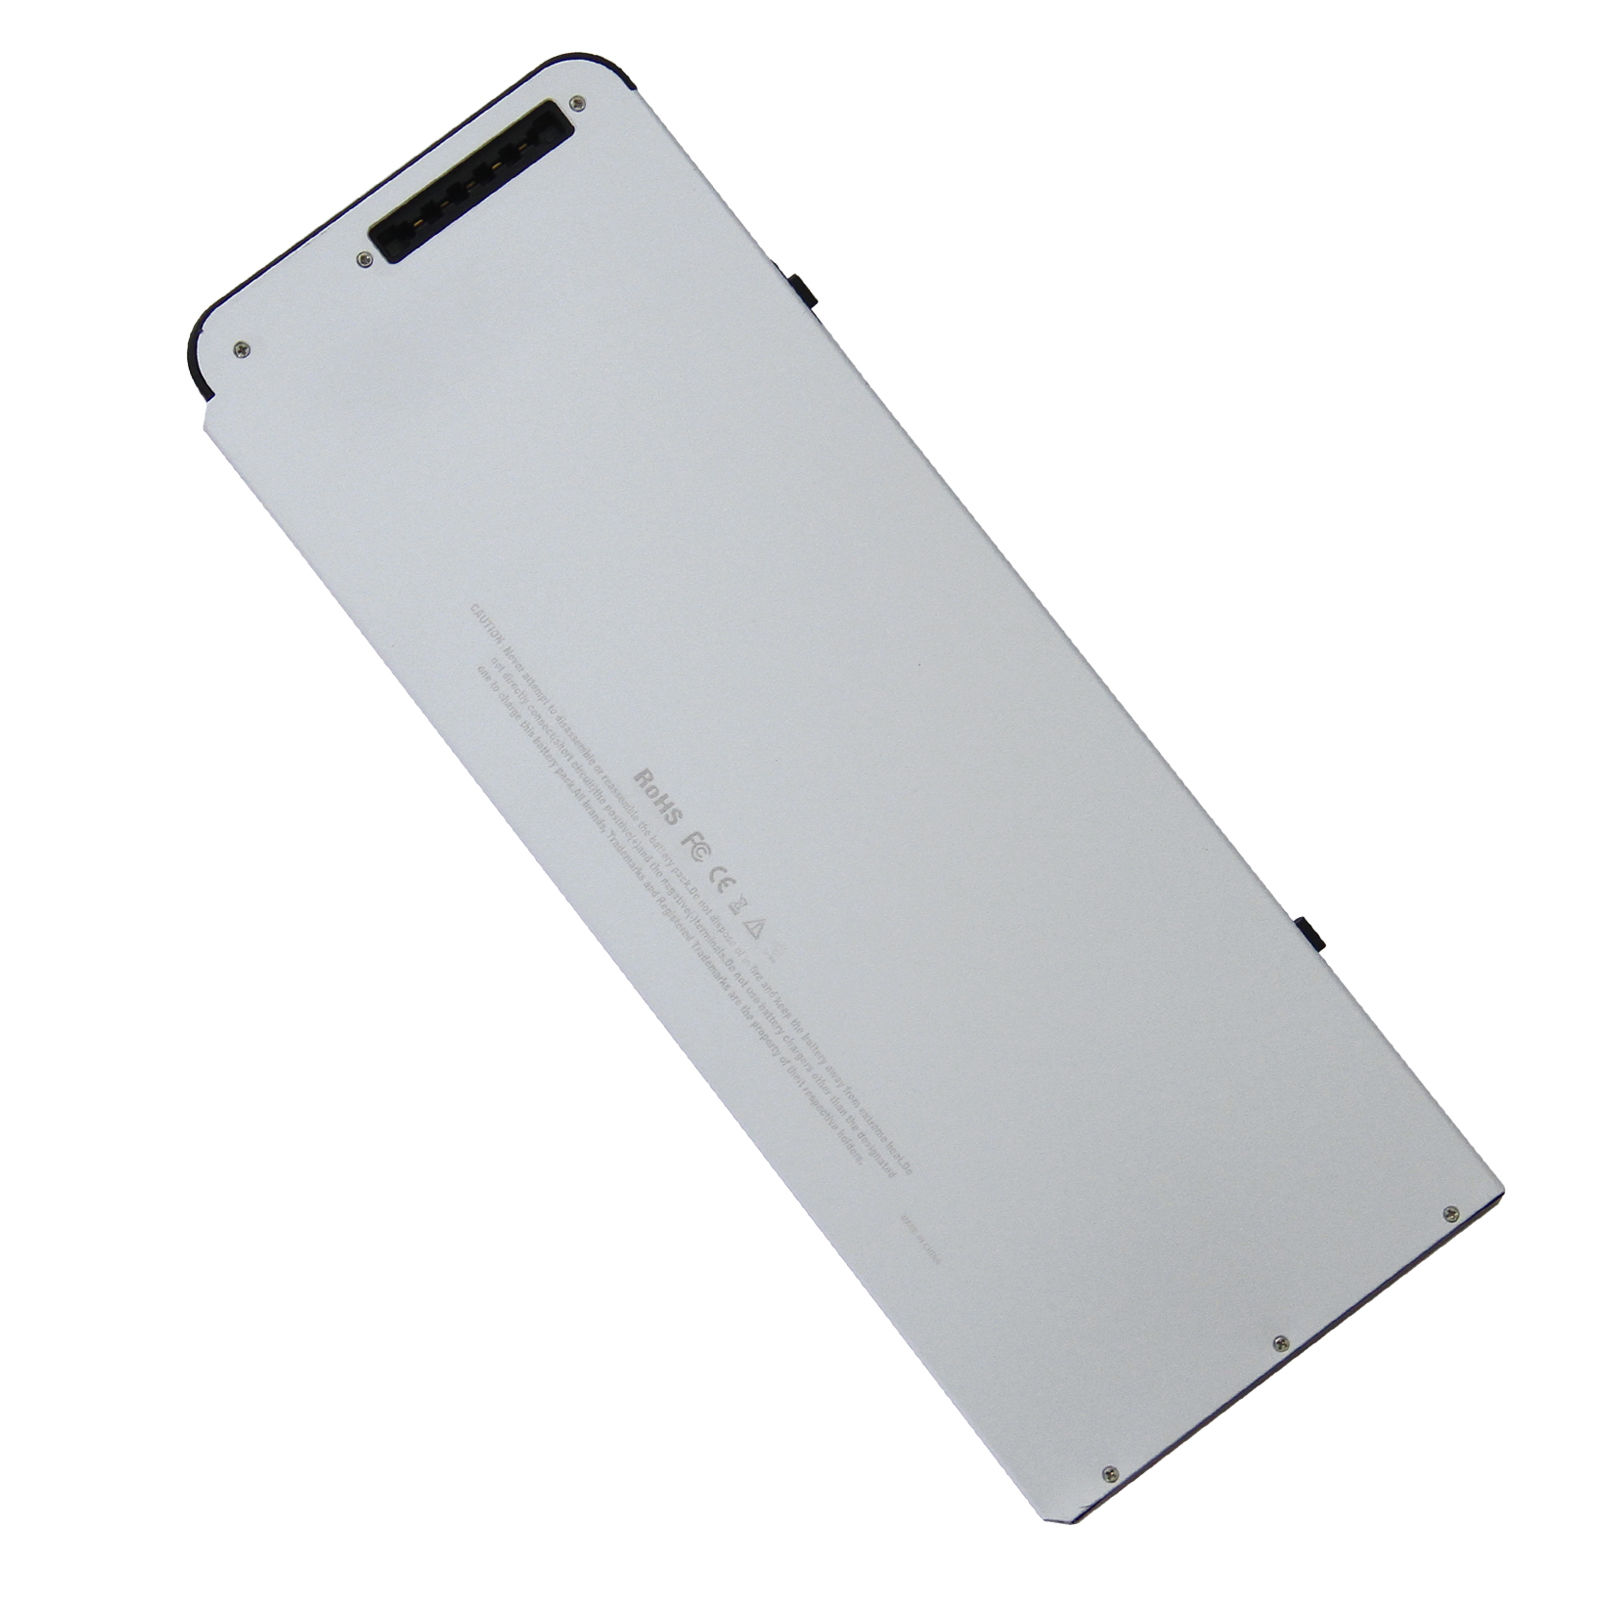 APPLE A1280 A1278 LAPTOP  REPLACEMENT BATTERY 13